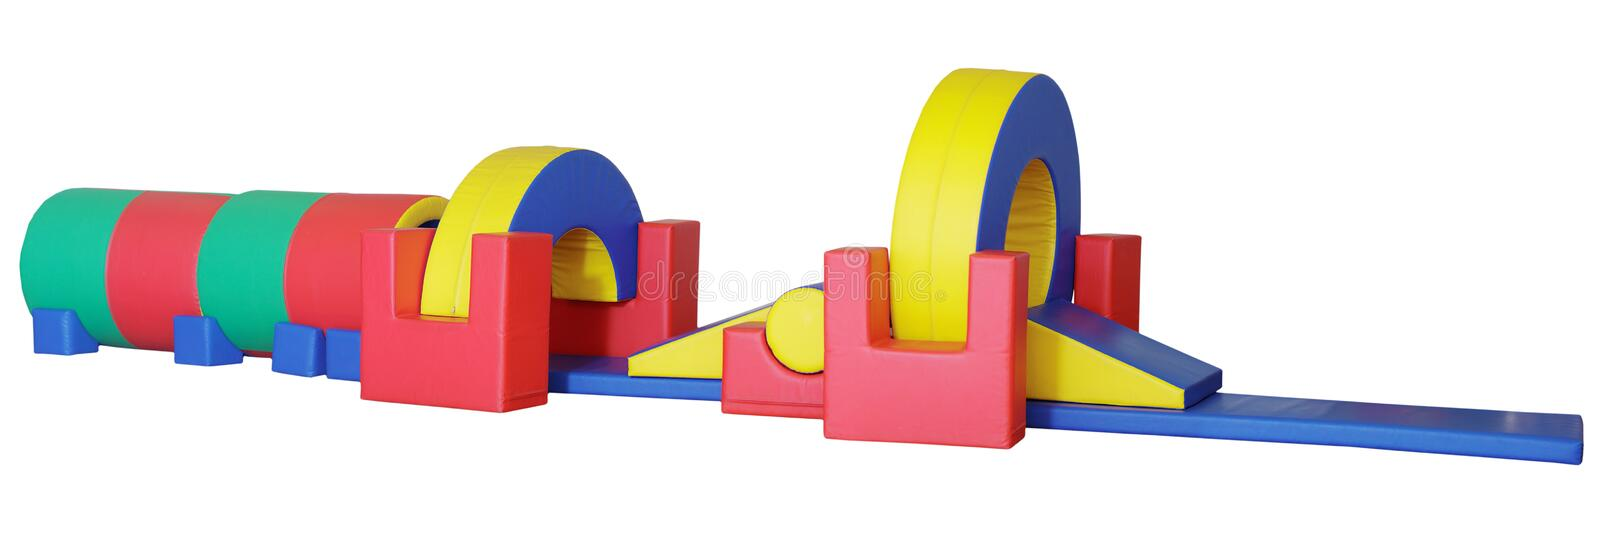 Big Children S Game Complex - Obstacle Course Stock Photos